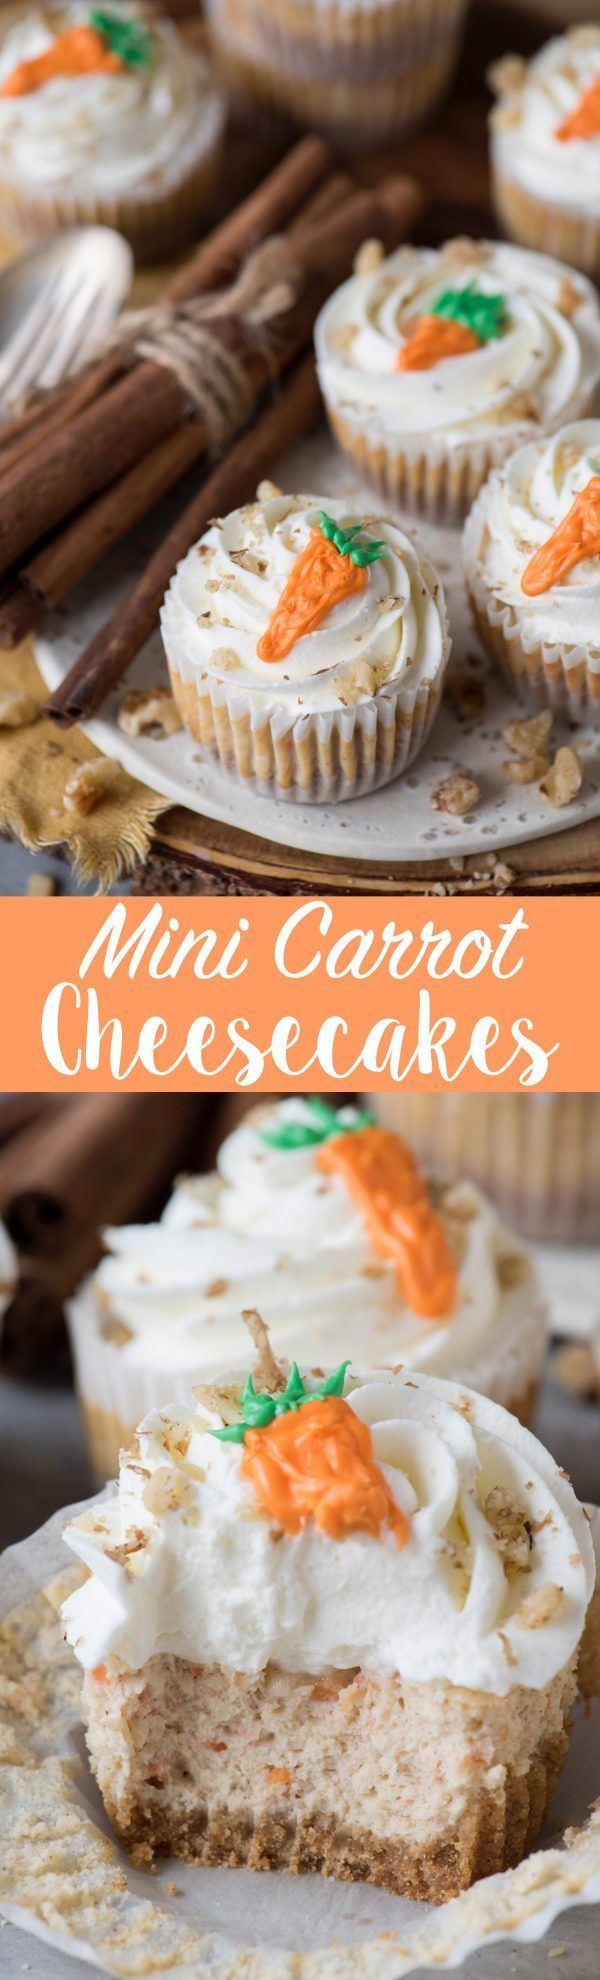 Mini Carrot Cheesecakes made in a muffin pan!